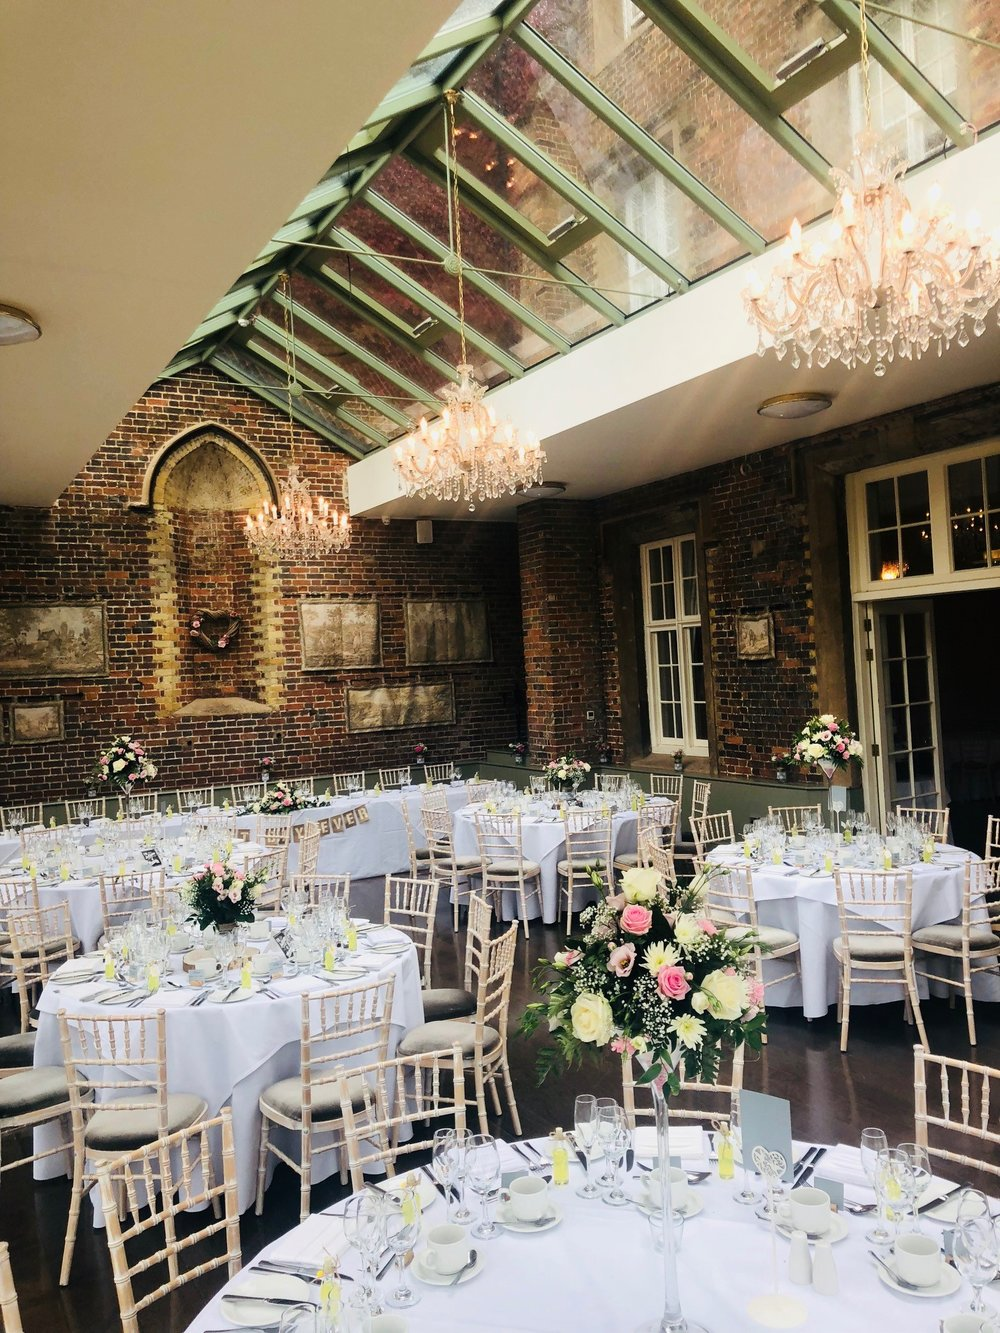 venue hire prices... - Our venue hire prices that are detailed in this section are based on non-exclusive use. Semi-Exclusive and total exclusive options are also available. Pricing varies depending on the day of the week, time of the year and which venue space you decide on.